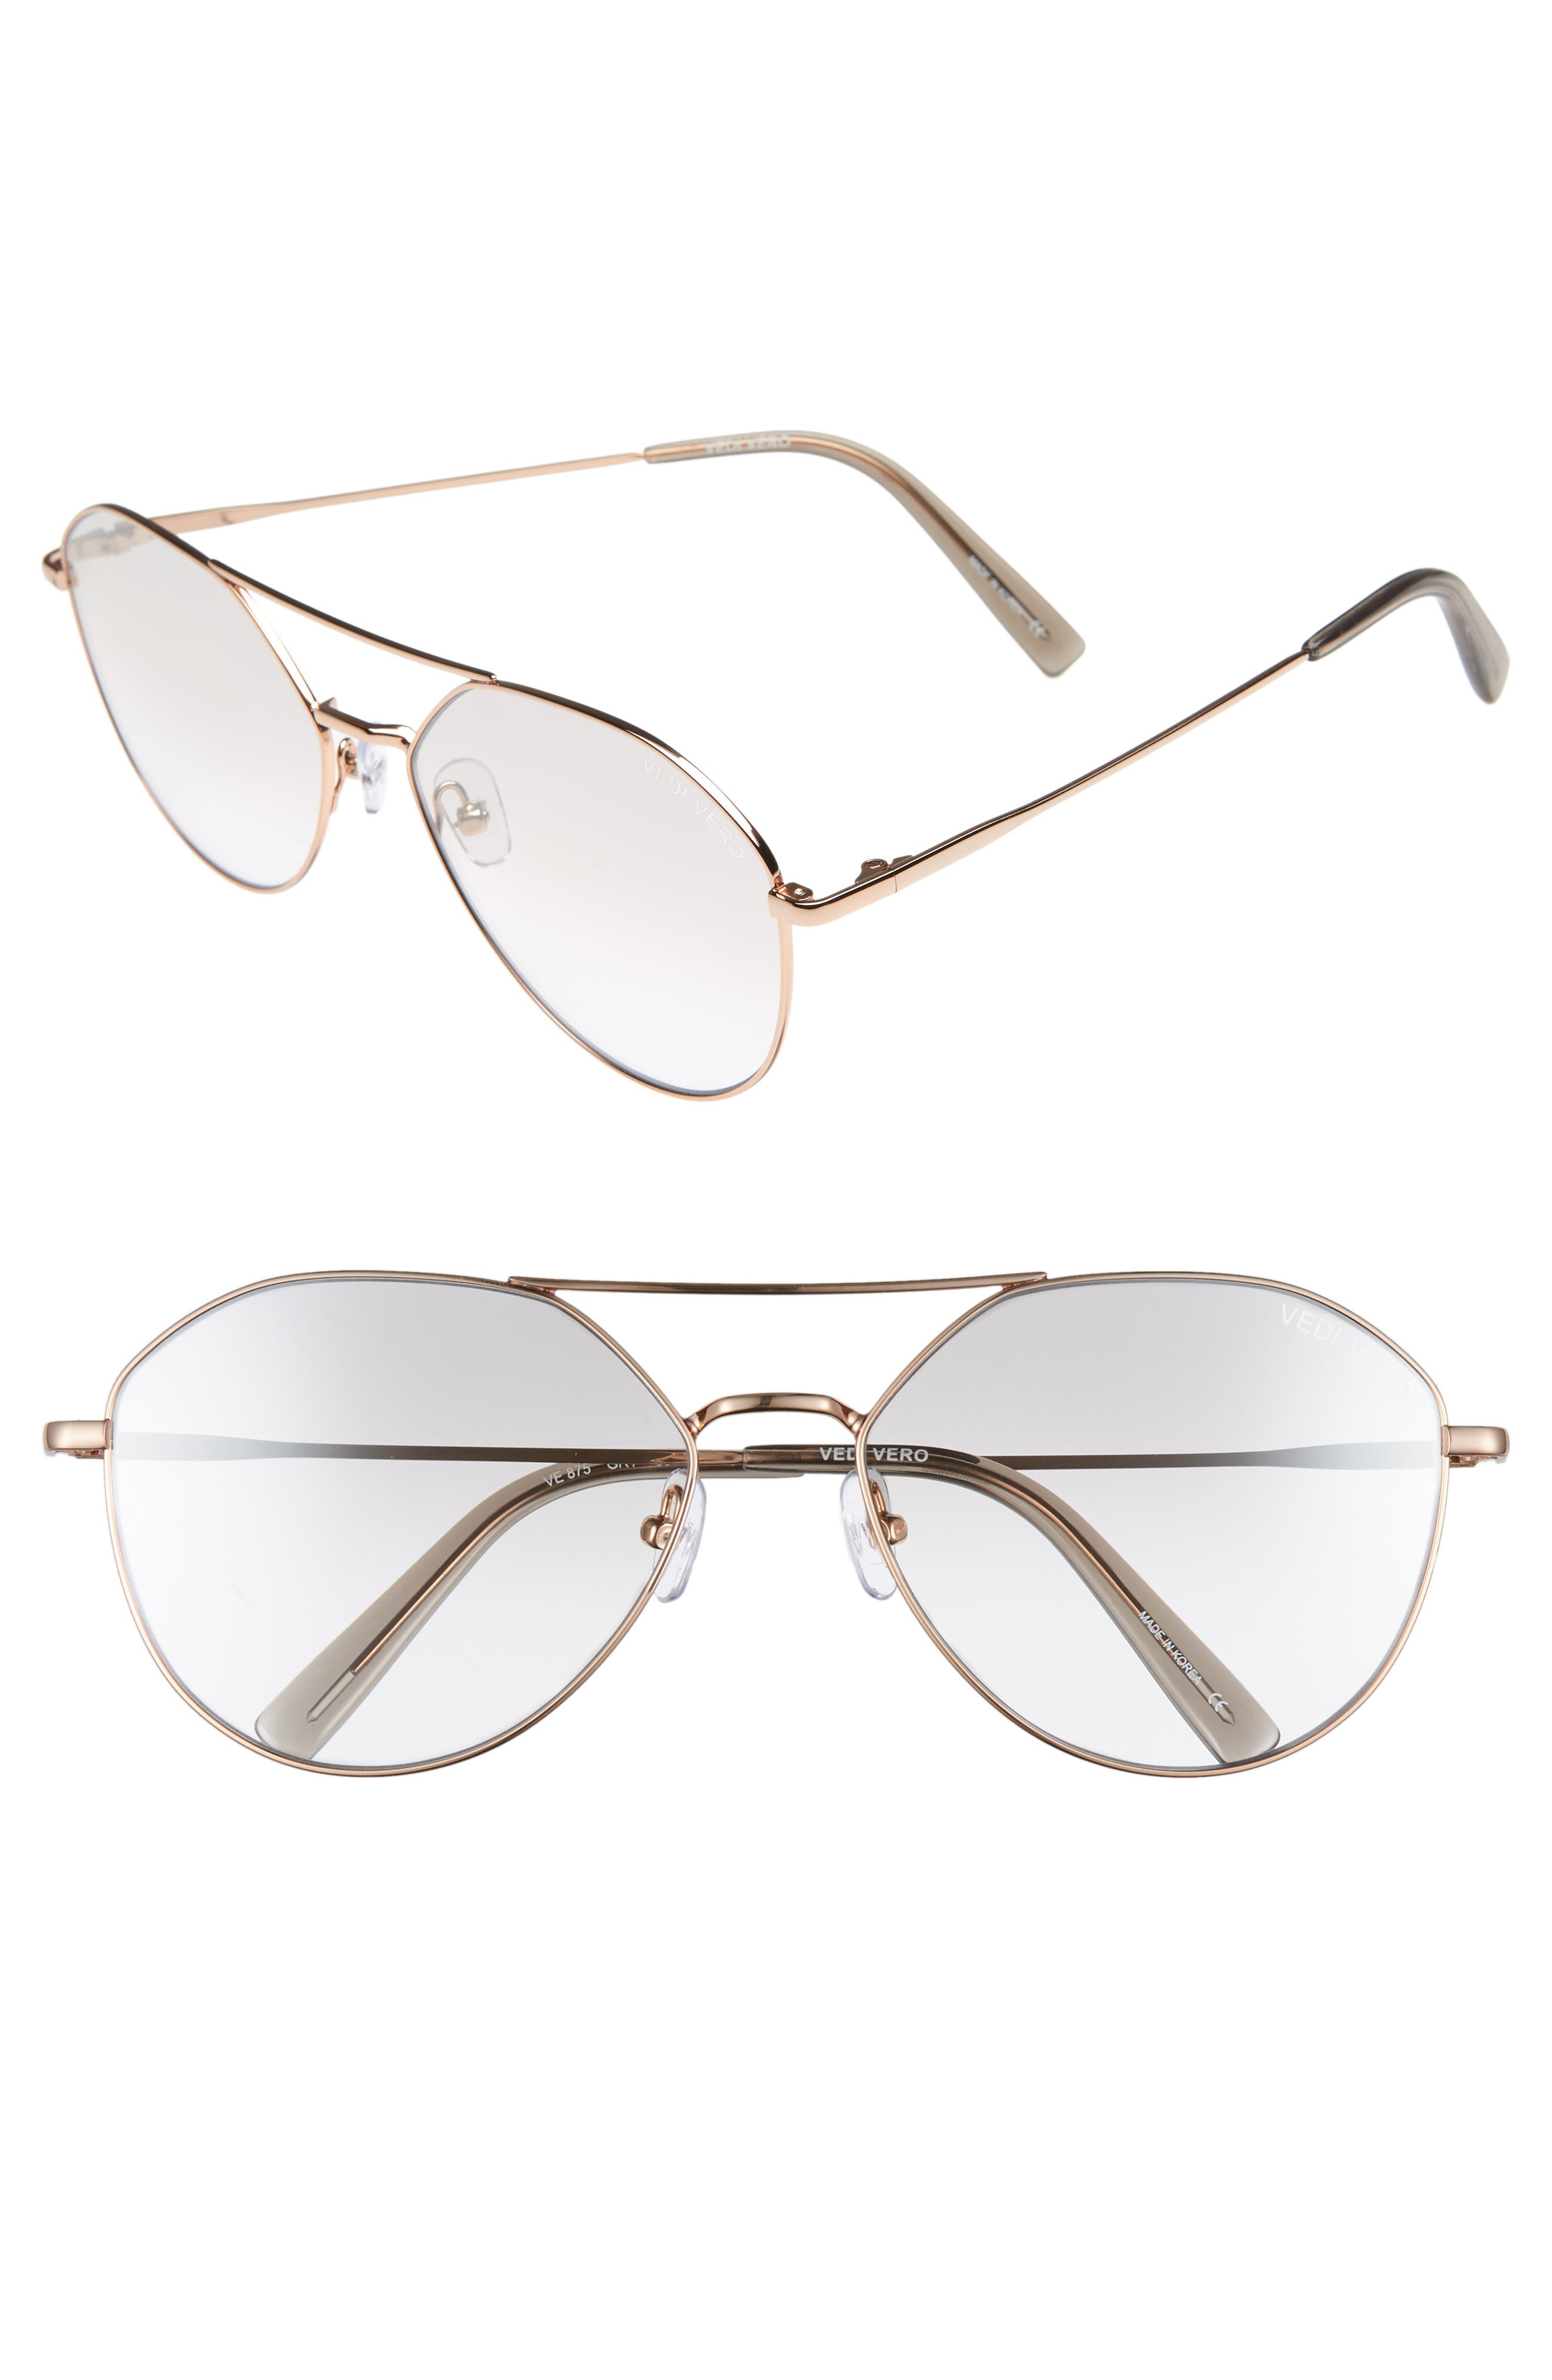 VEDI VERO 60Mm Aviator Sunglasses - Shiny Rose Gold